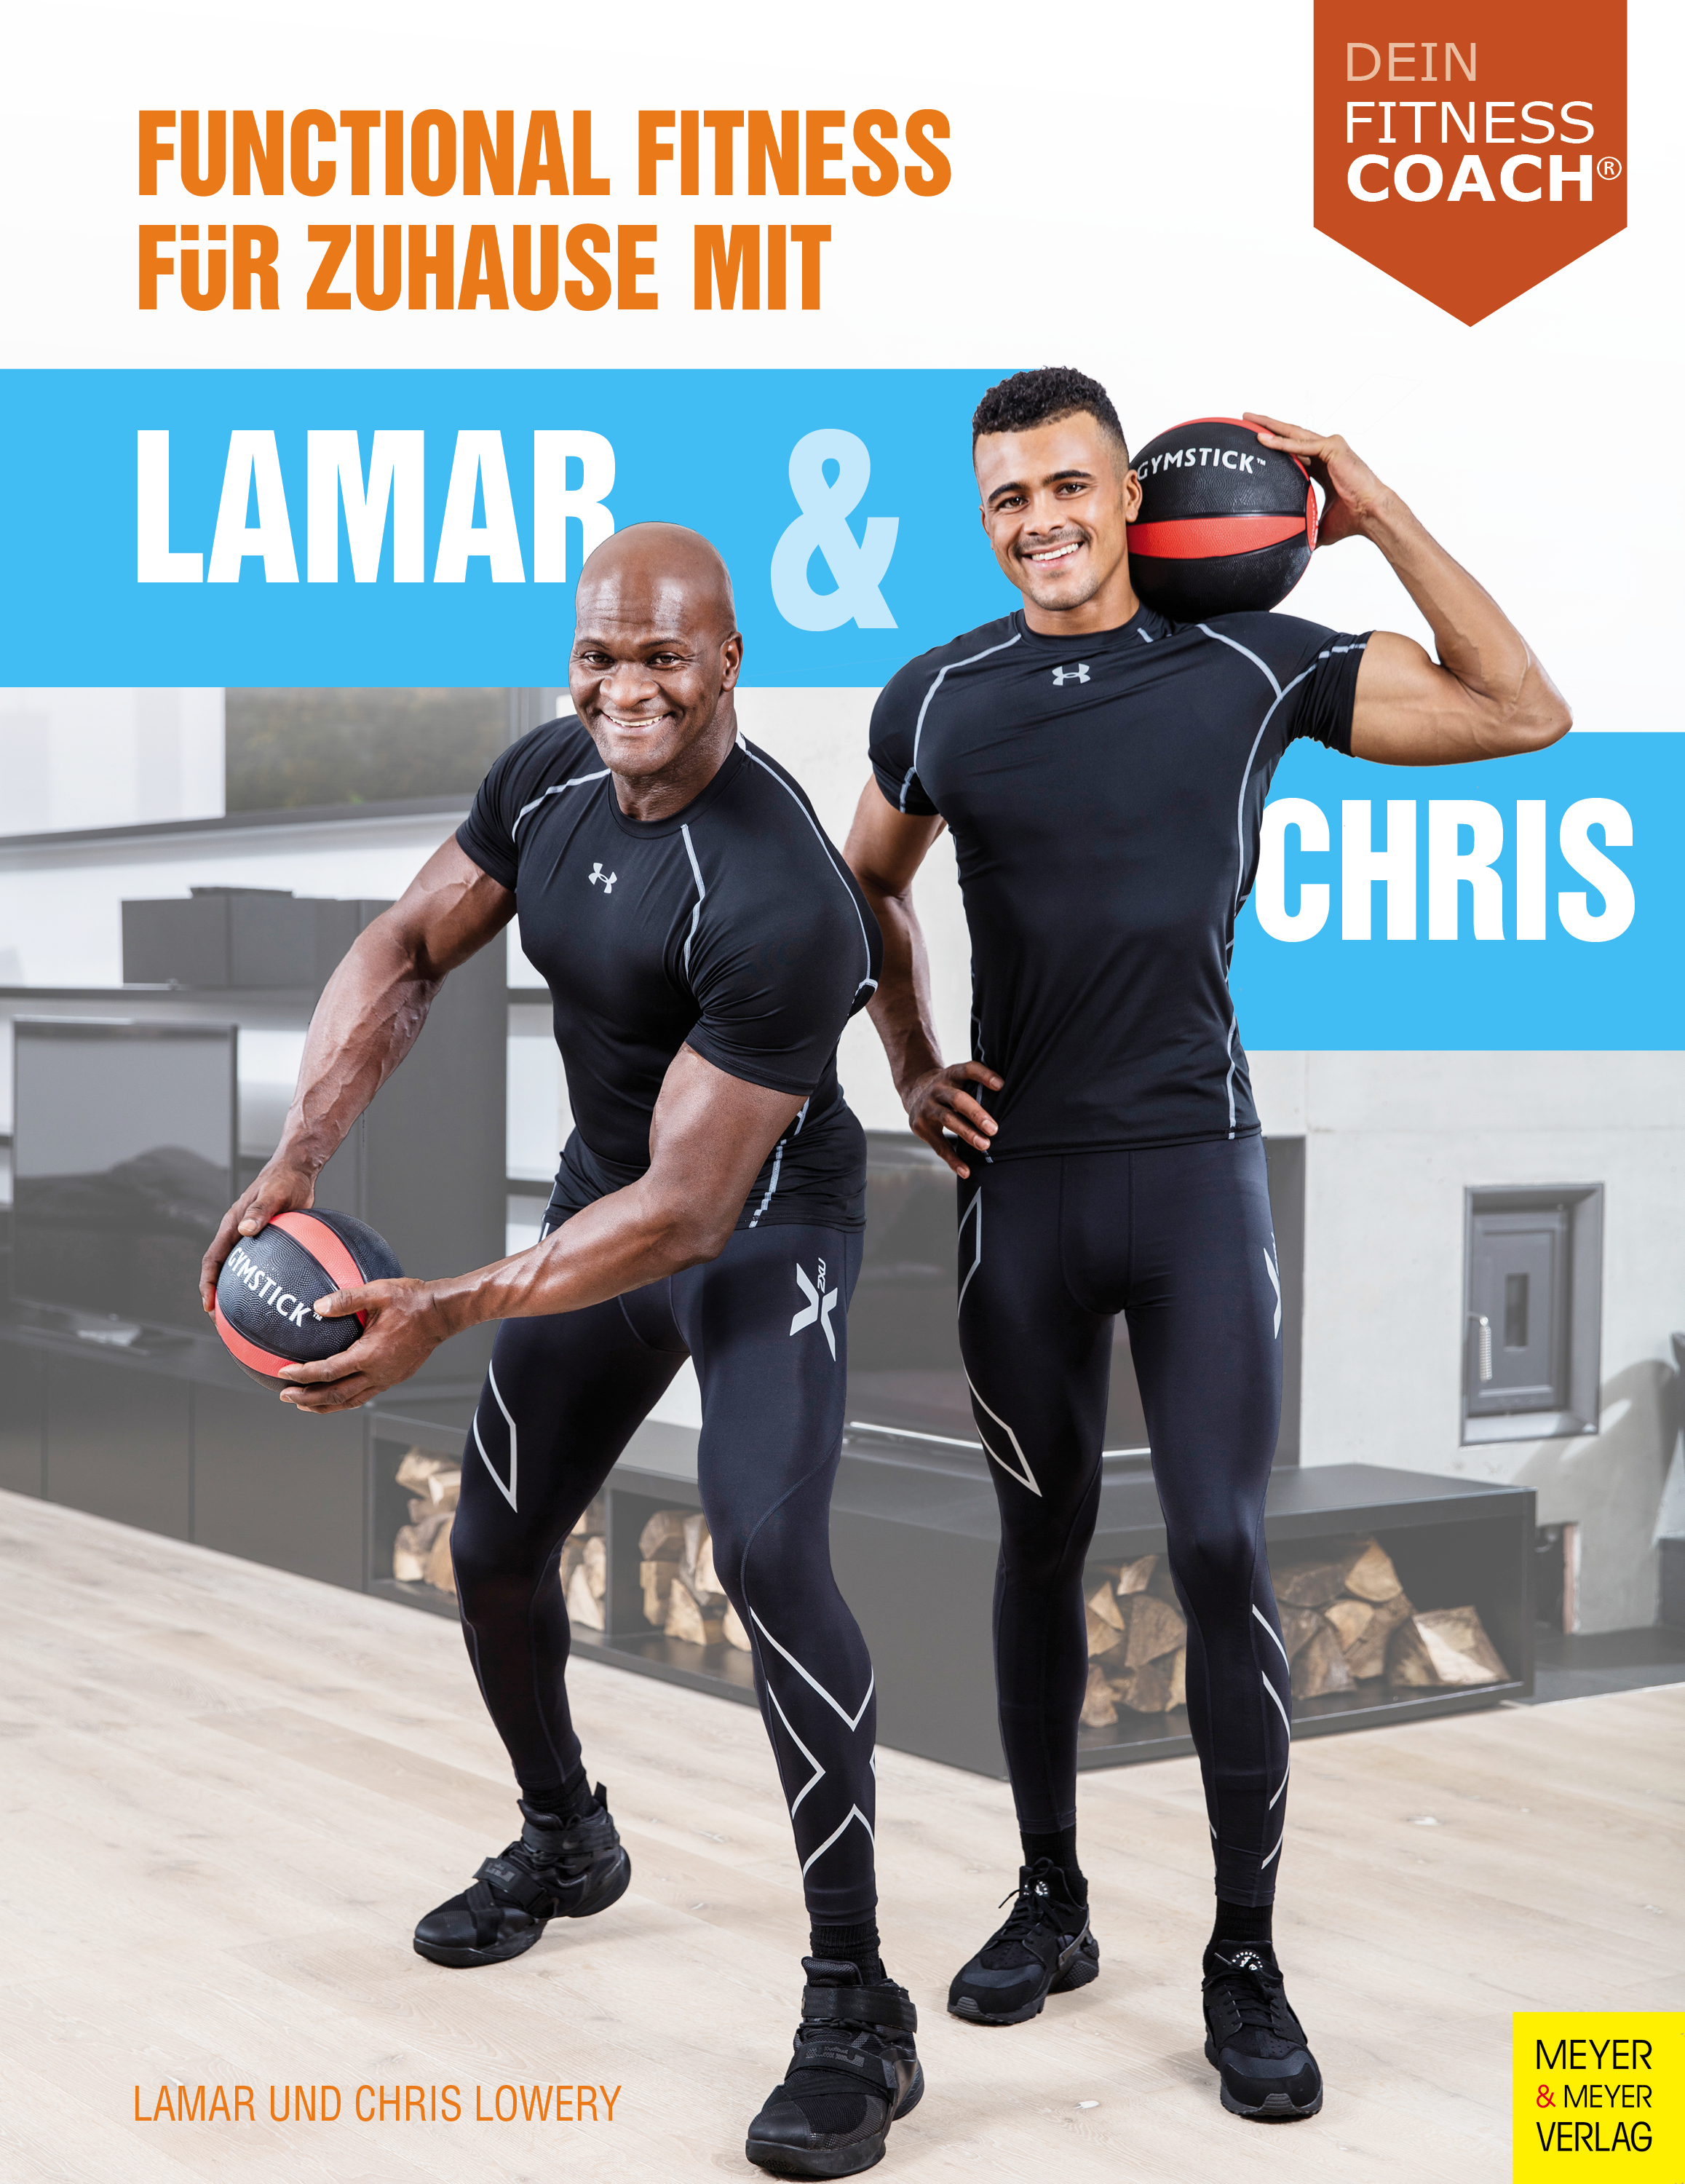 functional fitness f r zuhause mit lamar und chris dein fitnesscoach. Black Bedroom Furniture Sets. Home Design Ideas